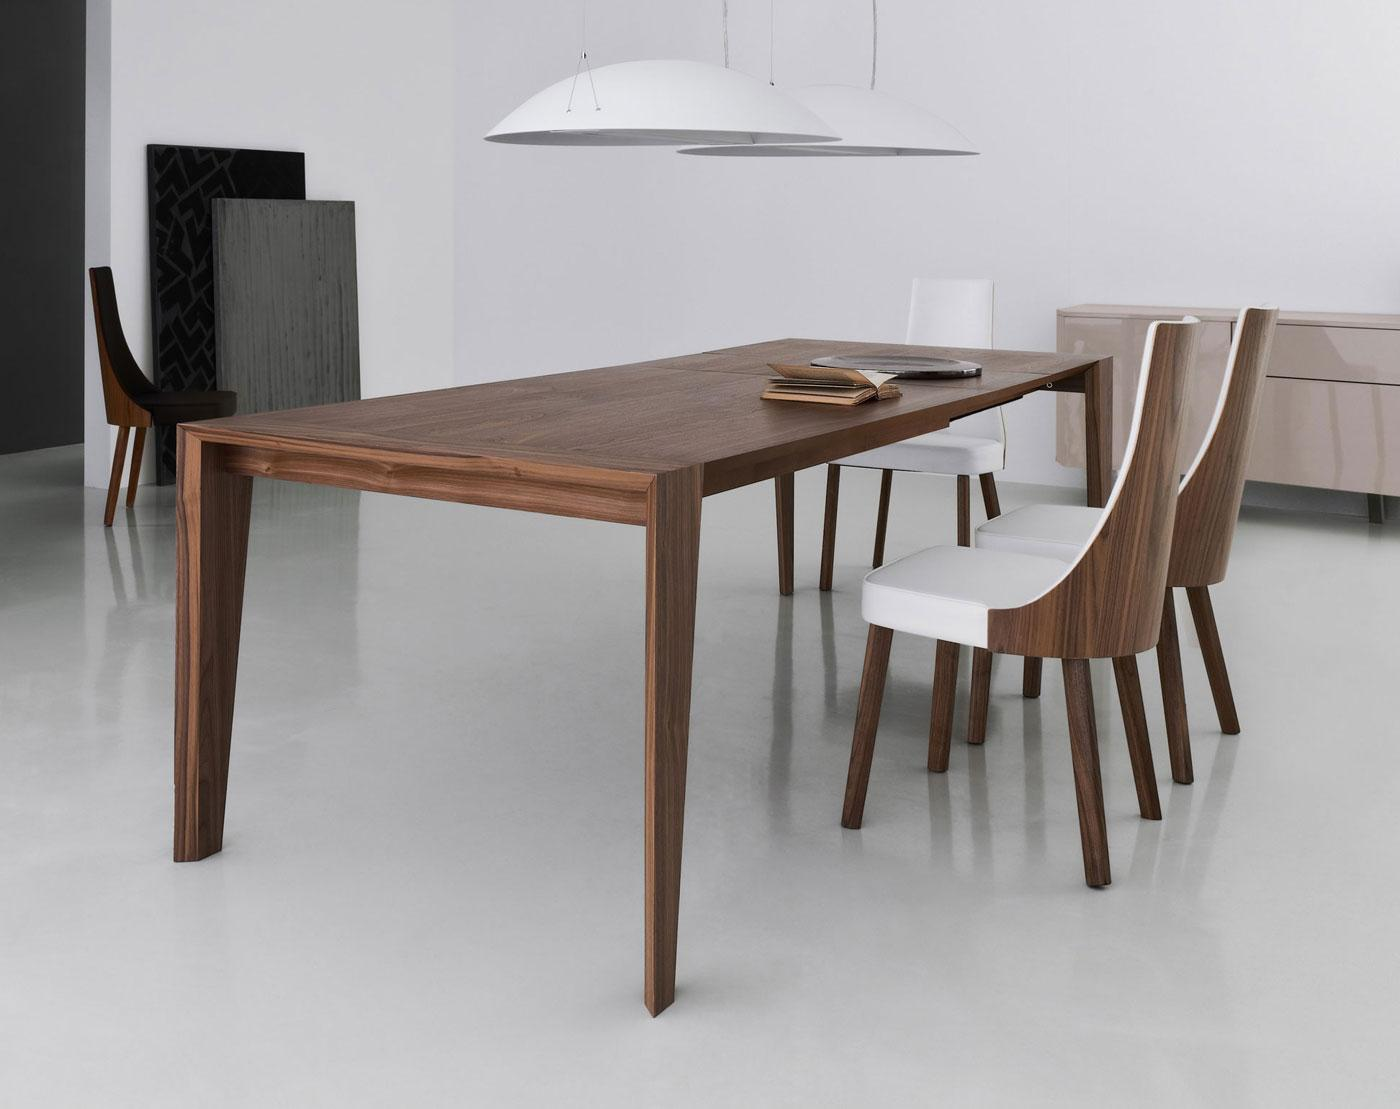 pulse 175 extendable wood dining table | shop online - italy dream